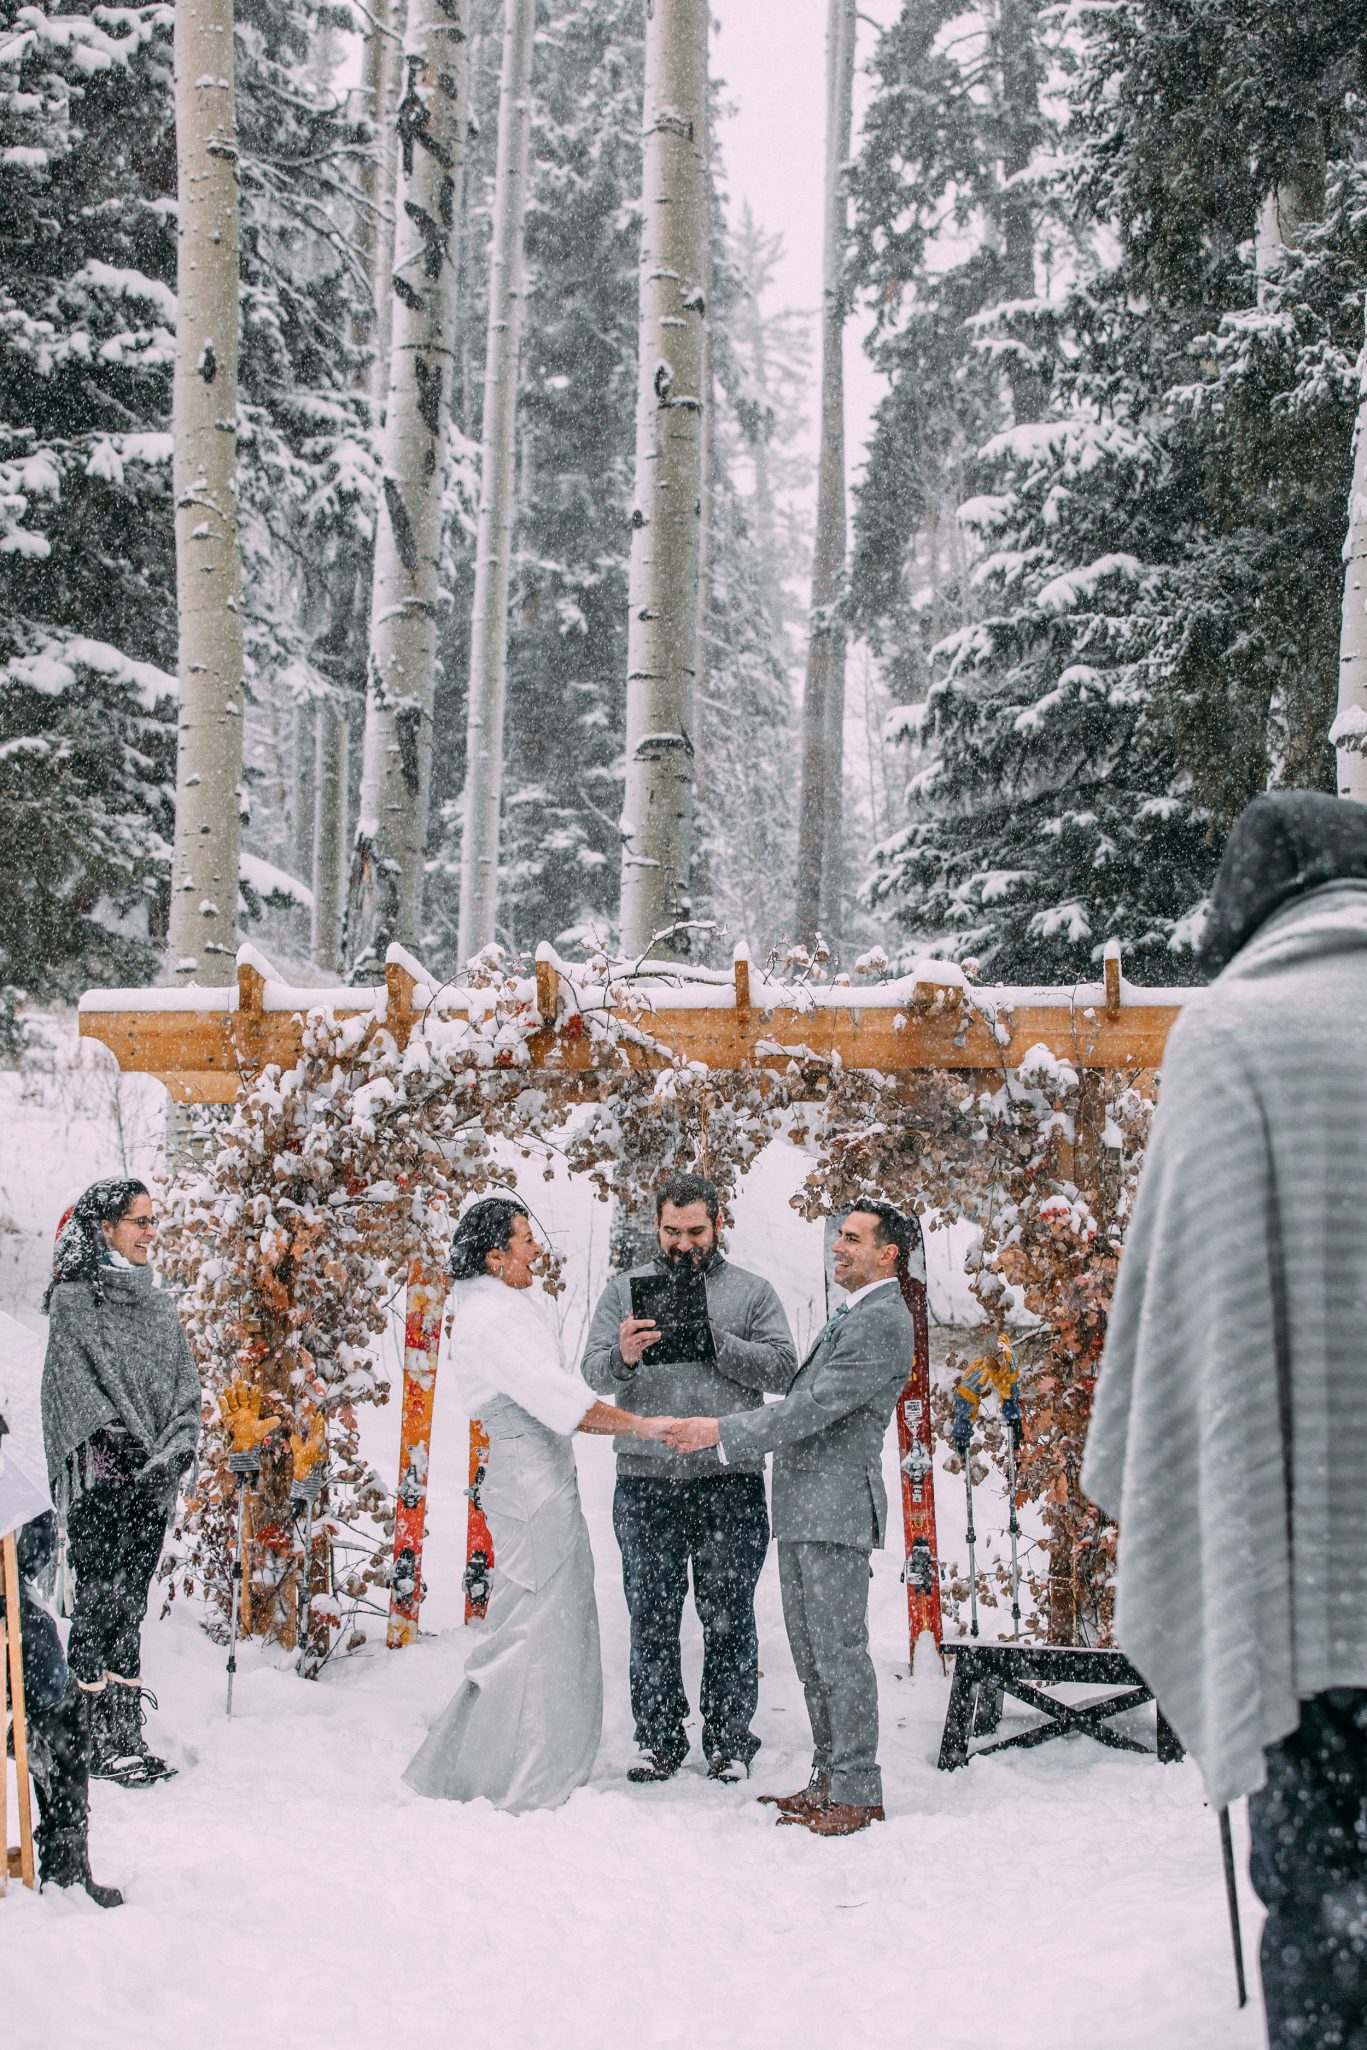 A Winter ceremony in the Snow at Silverpick Lodge, Durango Colorado